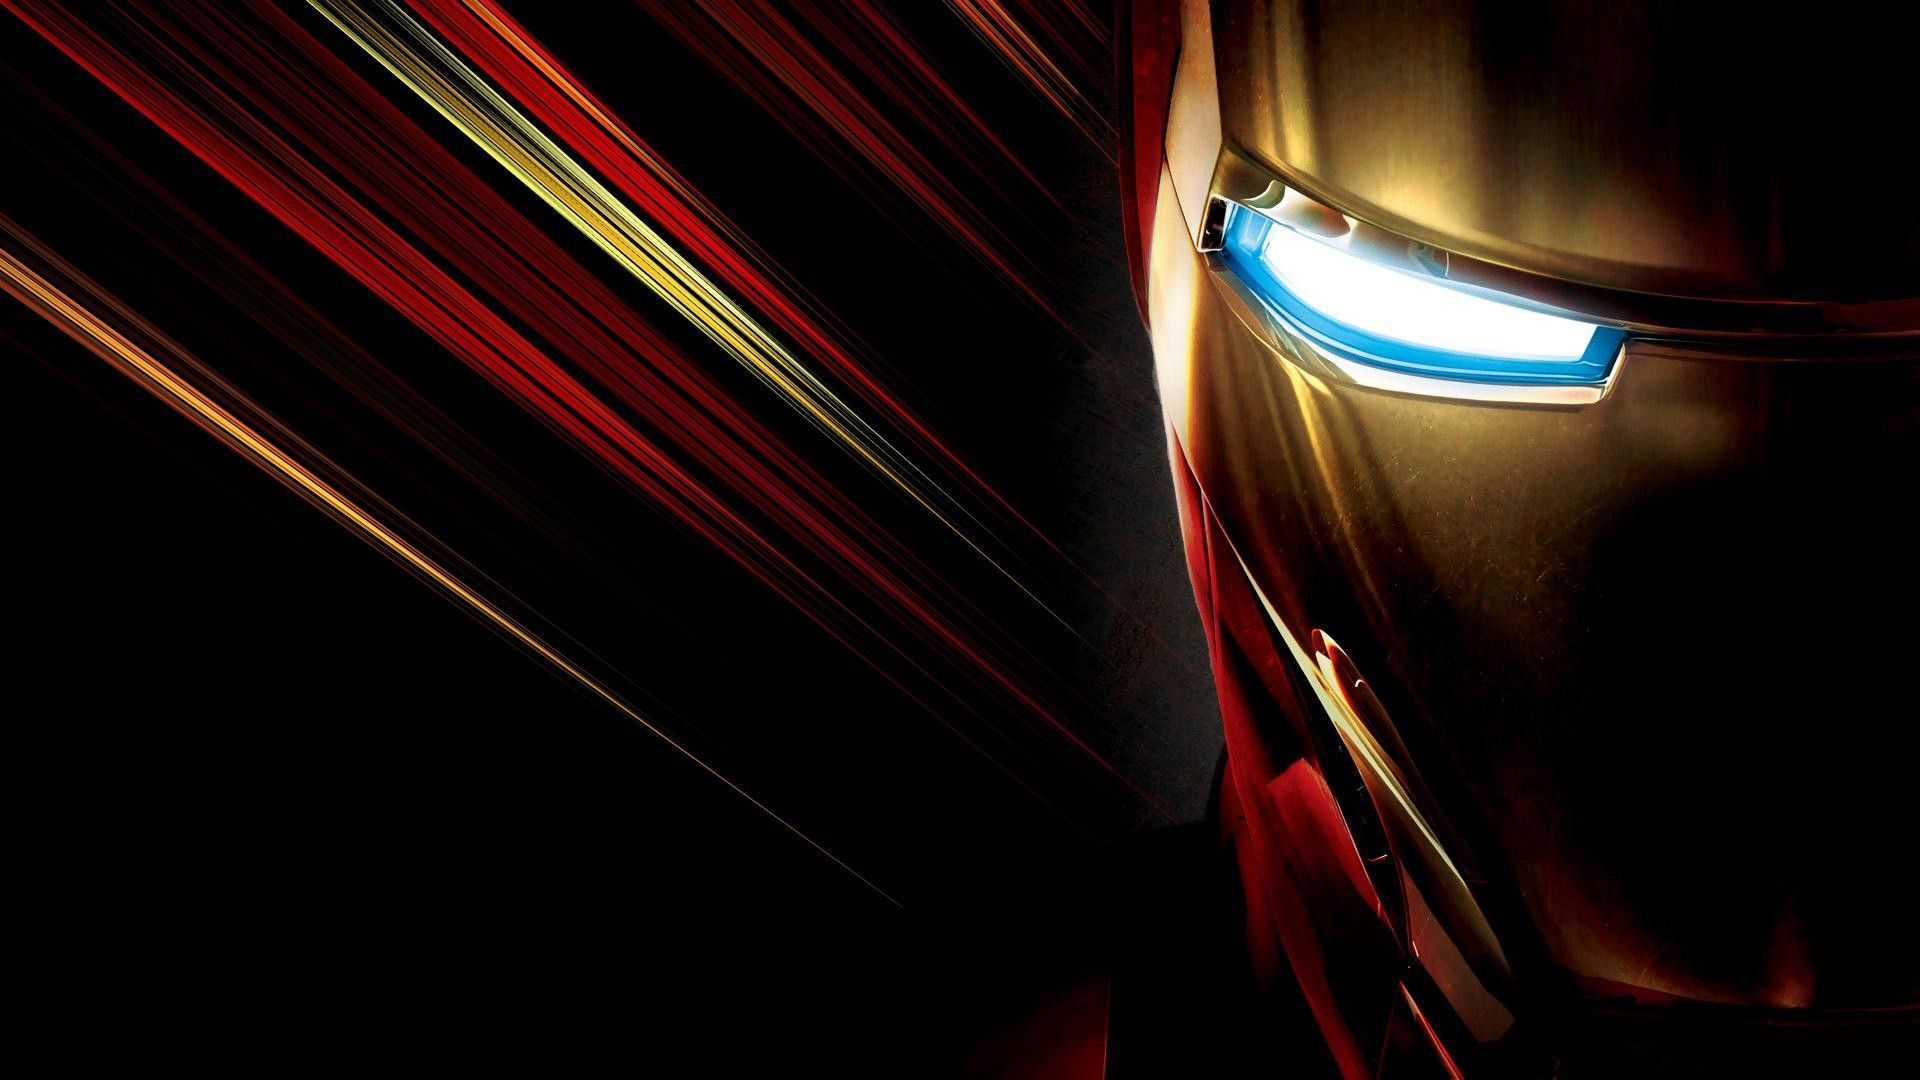 iron man avengers wallpapers high quality with high resolution desktop wallpaper on movies category similar with age of ultron avengers comic desktop iphone